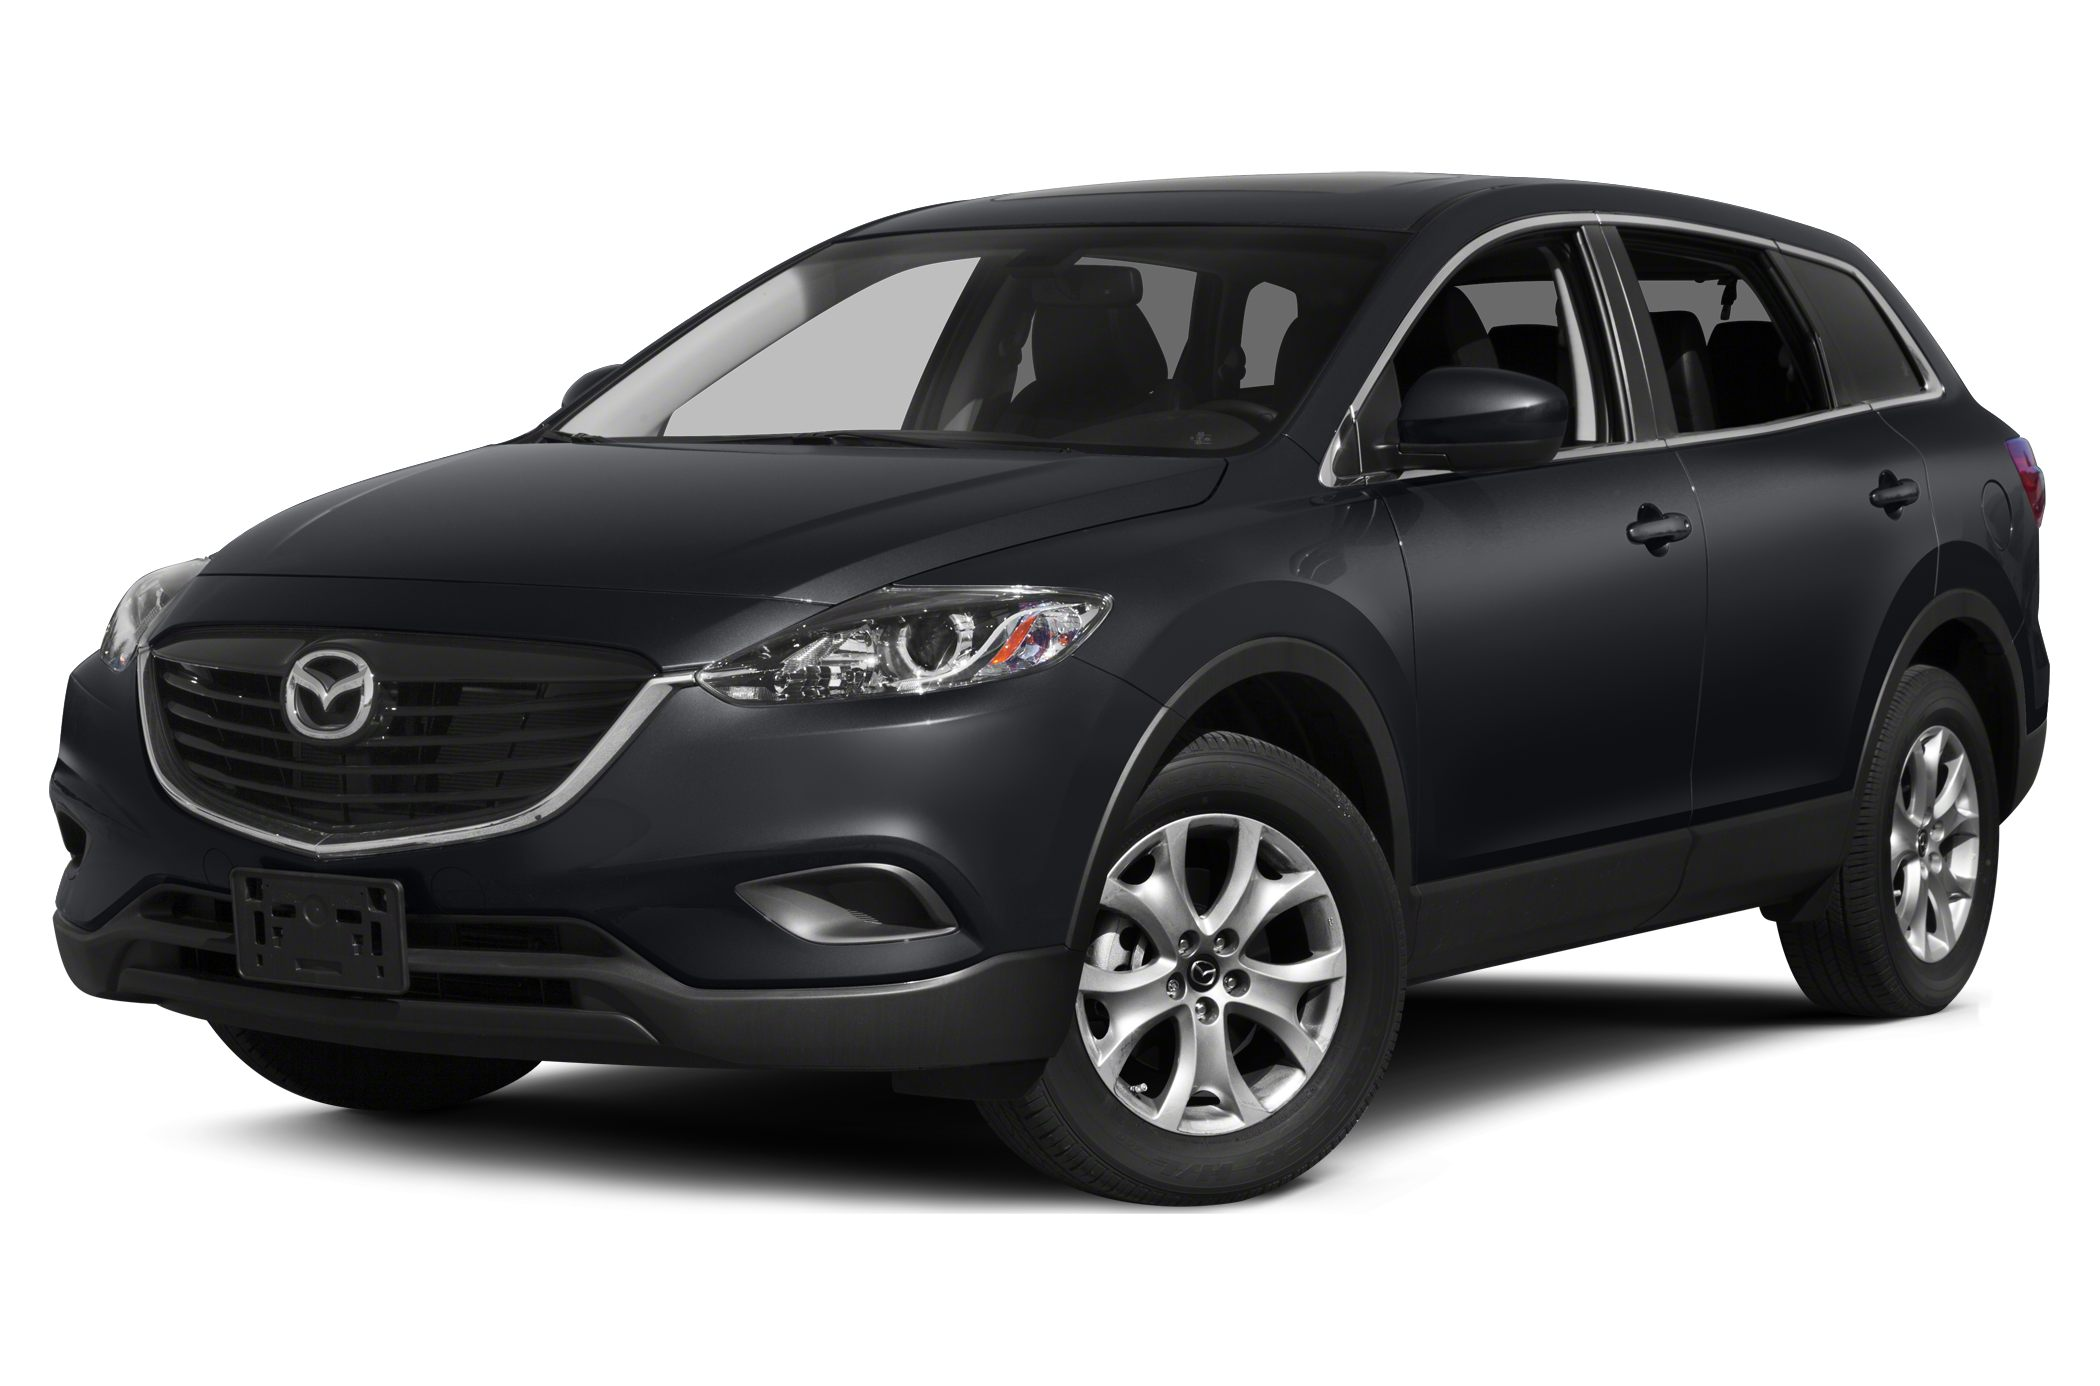 awd test touring motor front mazda quarter cx cars grand trend three first